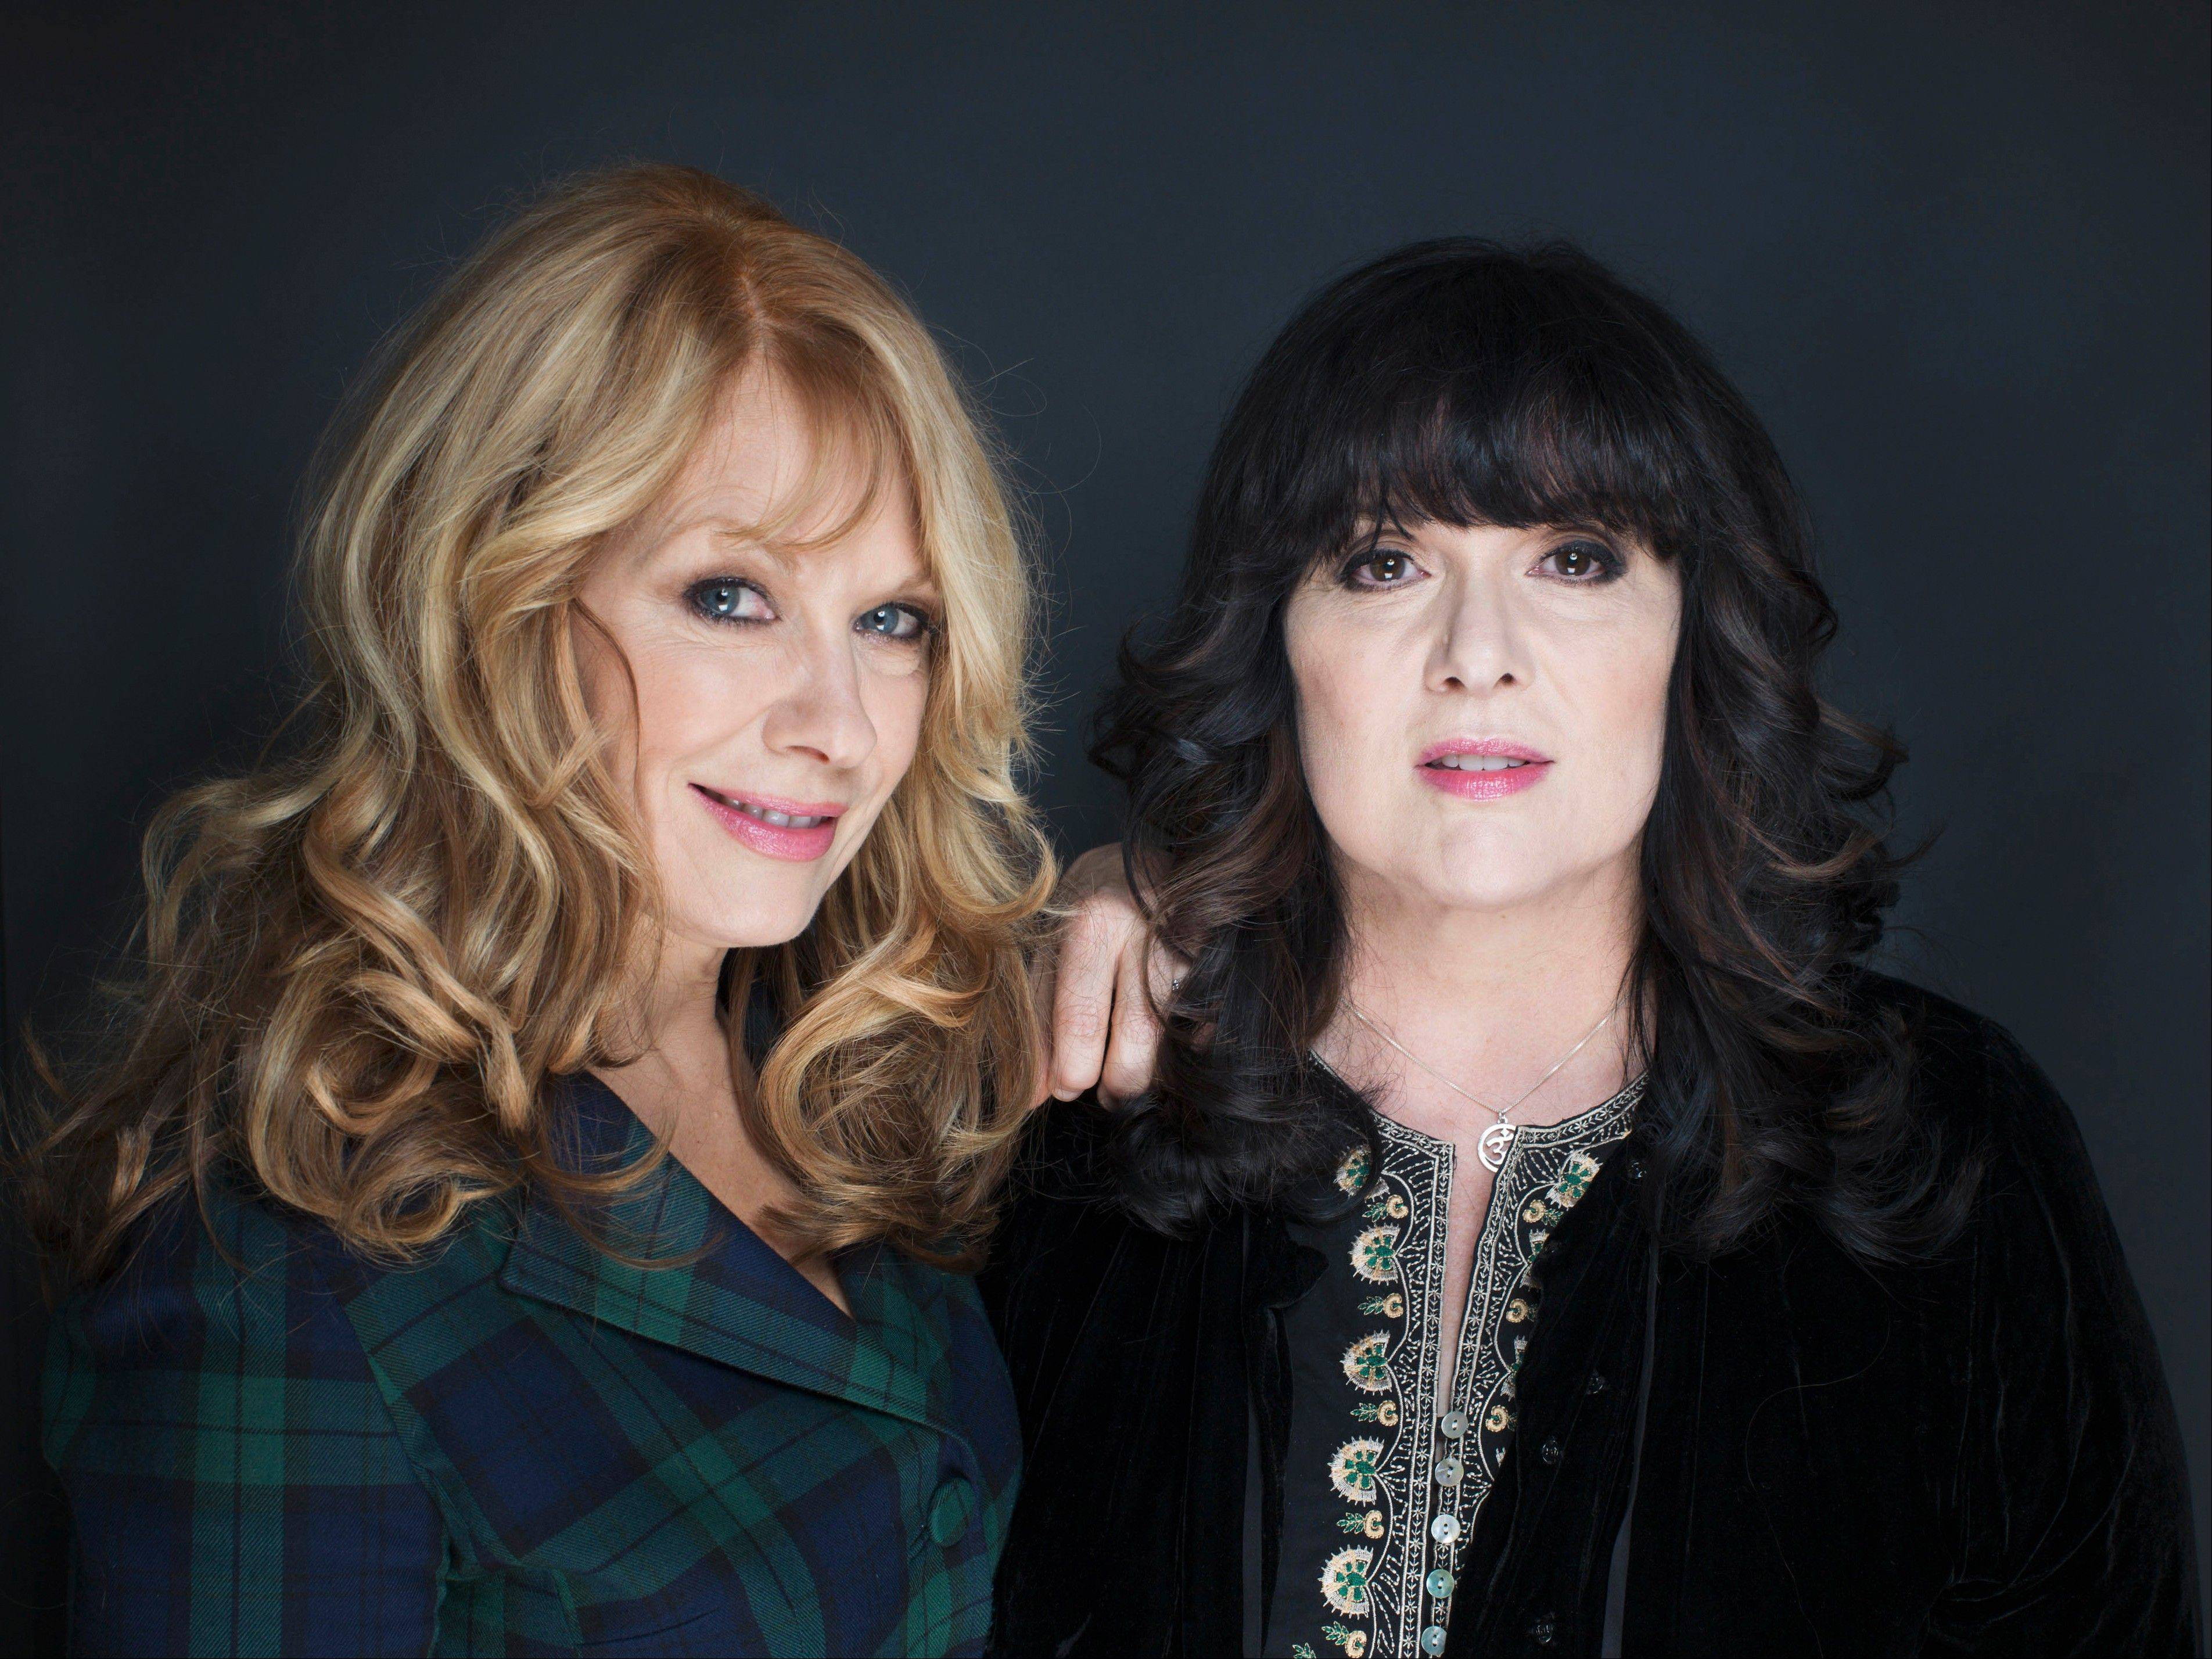 Nancy, left, and Ann Wilson of Heart will be inducted into the Rock and Roll Hall of Fame at a ceremony held in Los Angeles on April 18.